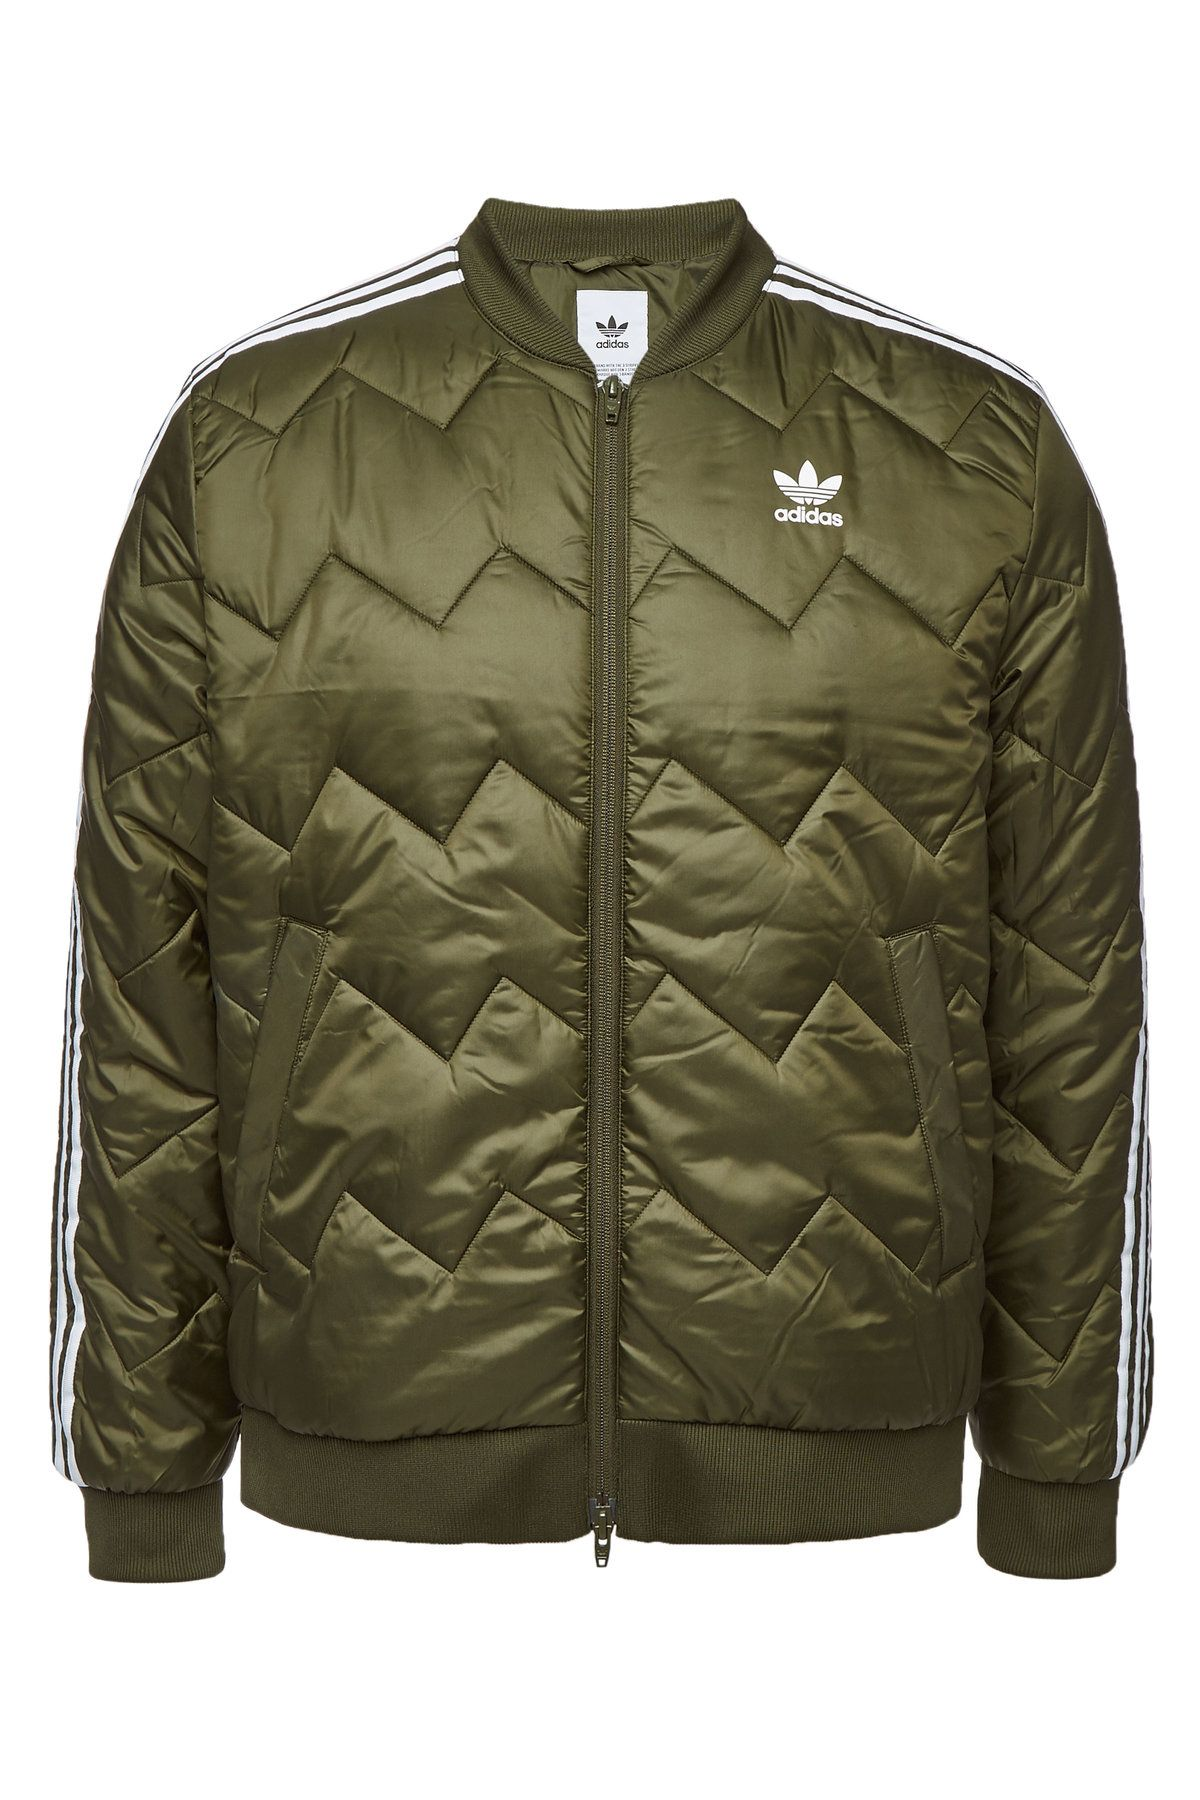 80237fb60 ADIDAS ORIGINALS SST QUILTED BOMBER JACKET.  adidasoriginals  cloth ...